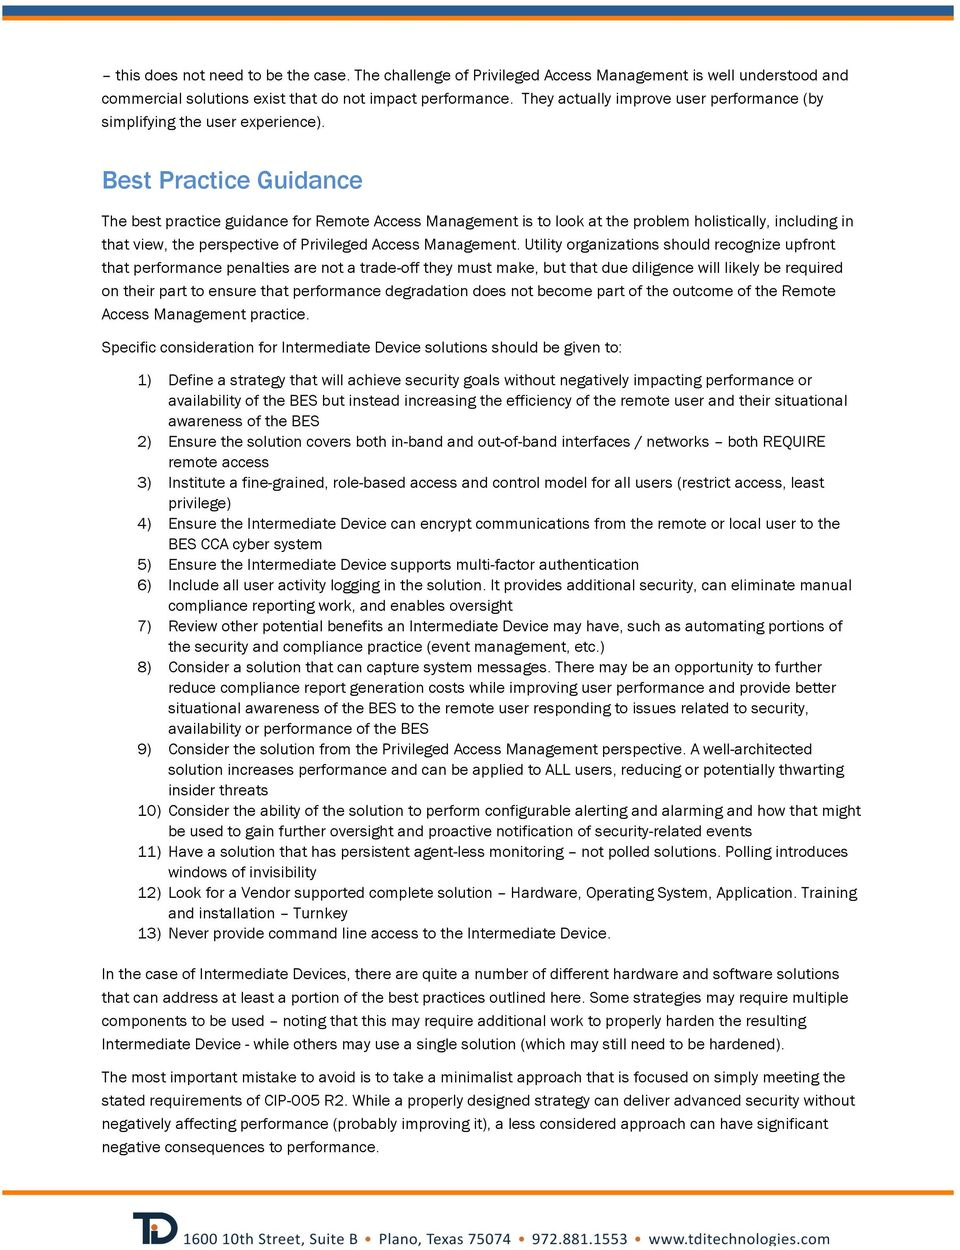 Best Practice Guidance The best practice guidance for Remote Access Management is to look at the problem holistically, including in that view, the perspective of Privileged Access Management.